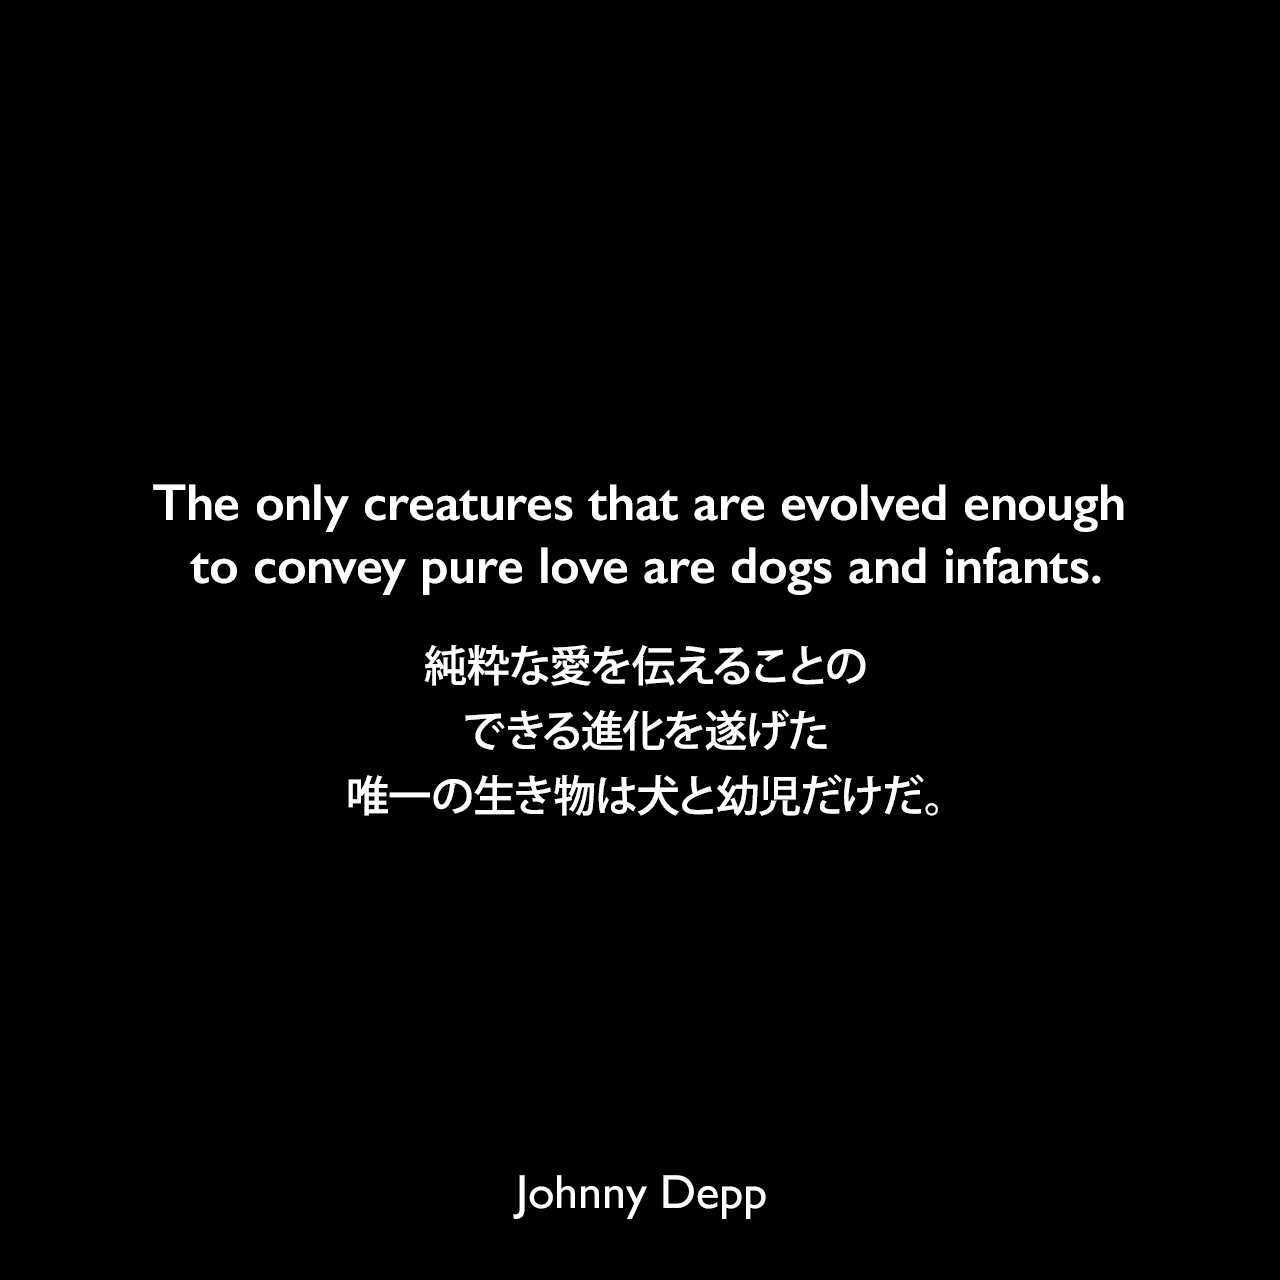 The only creatures that are evolved enough to convey pure love are dogs and infants.純粋な愛を伝えることのできる進化を遂げた、唯一の生き物は犬と幼児だけだ。Johnny Depp